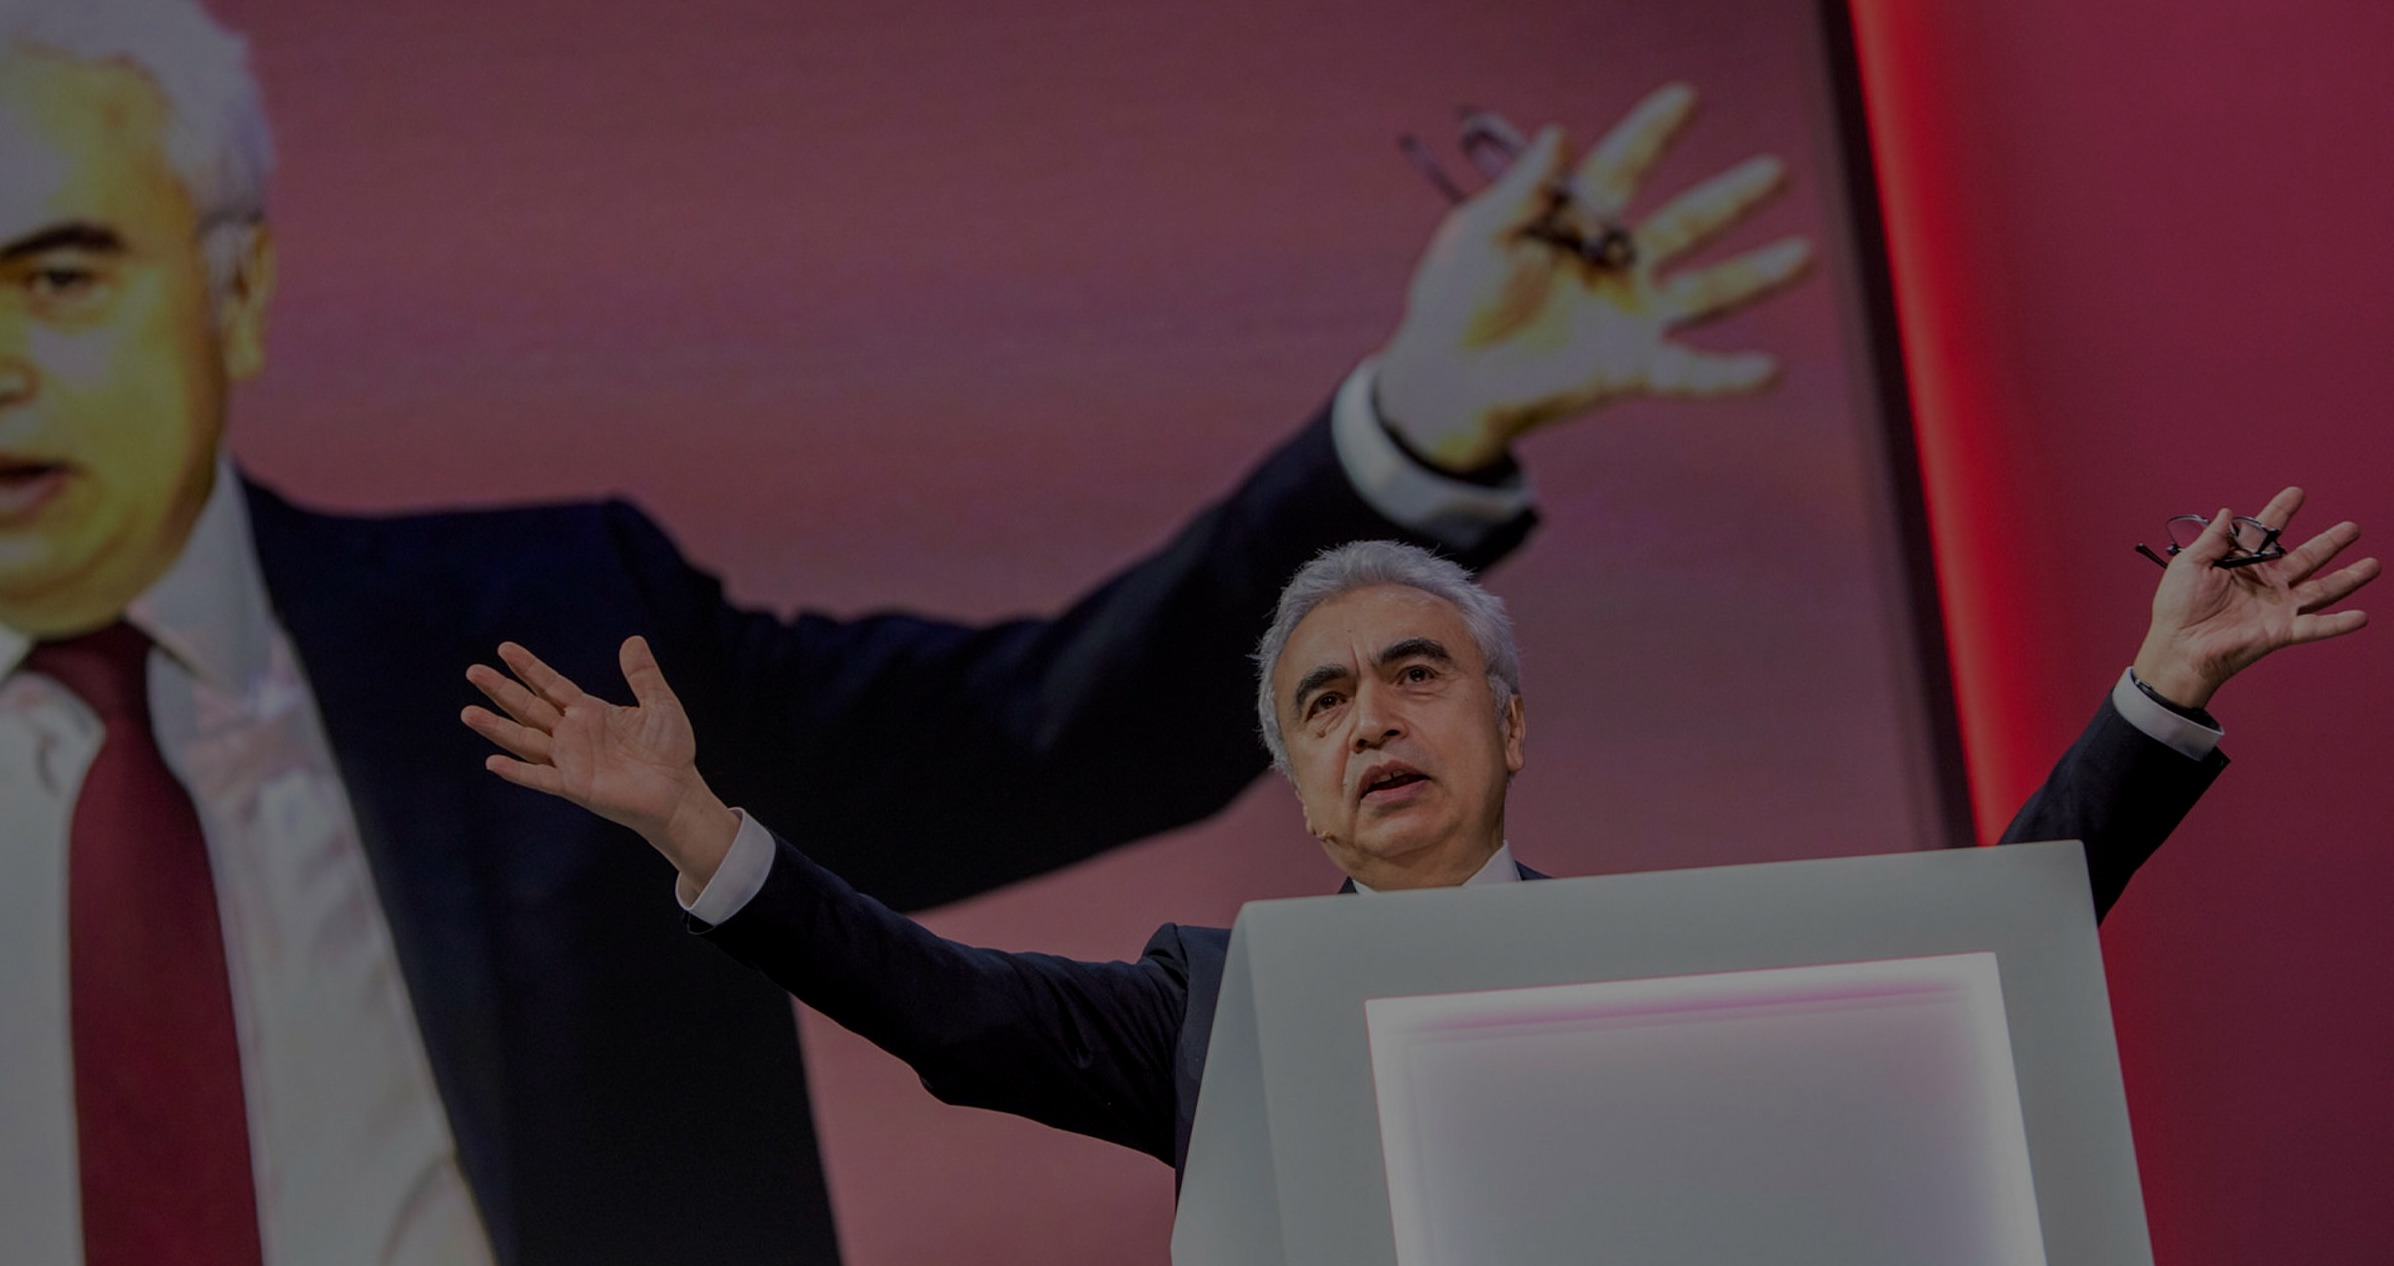 Can we trust the IEA to set the global economy on a path to zero emissions?